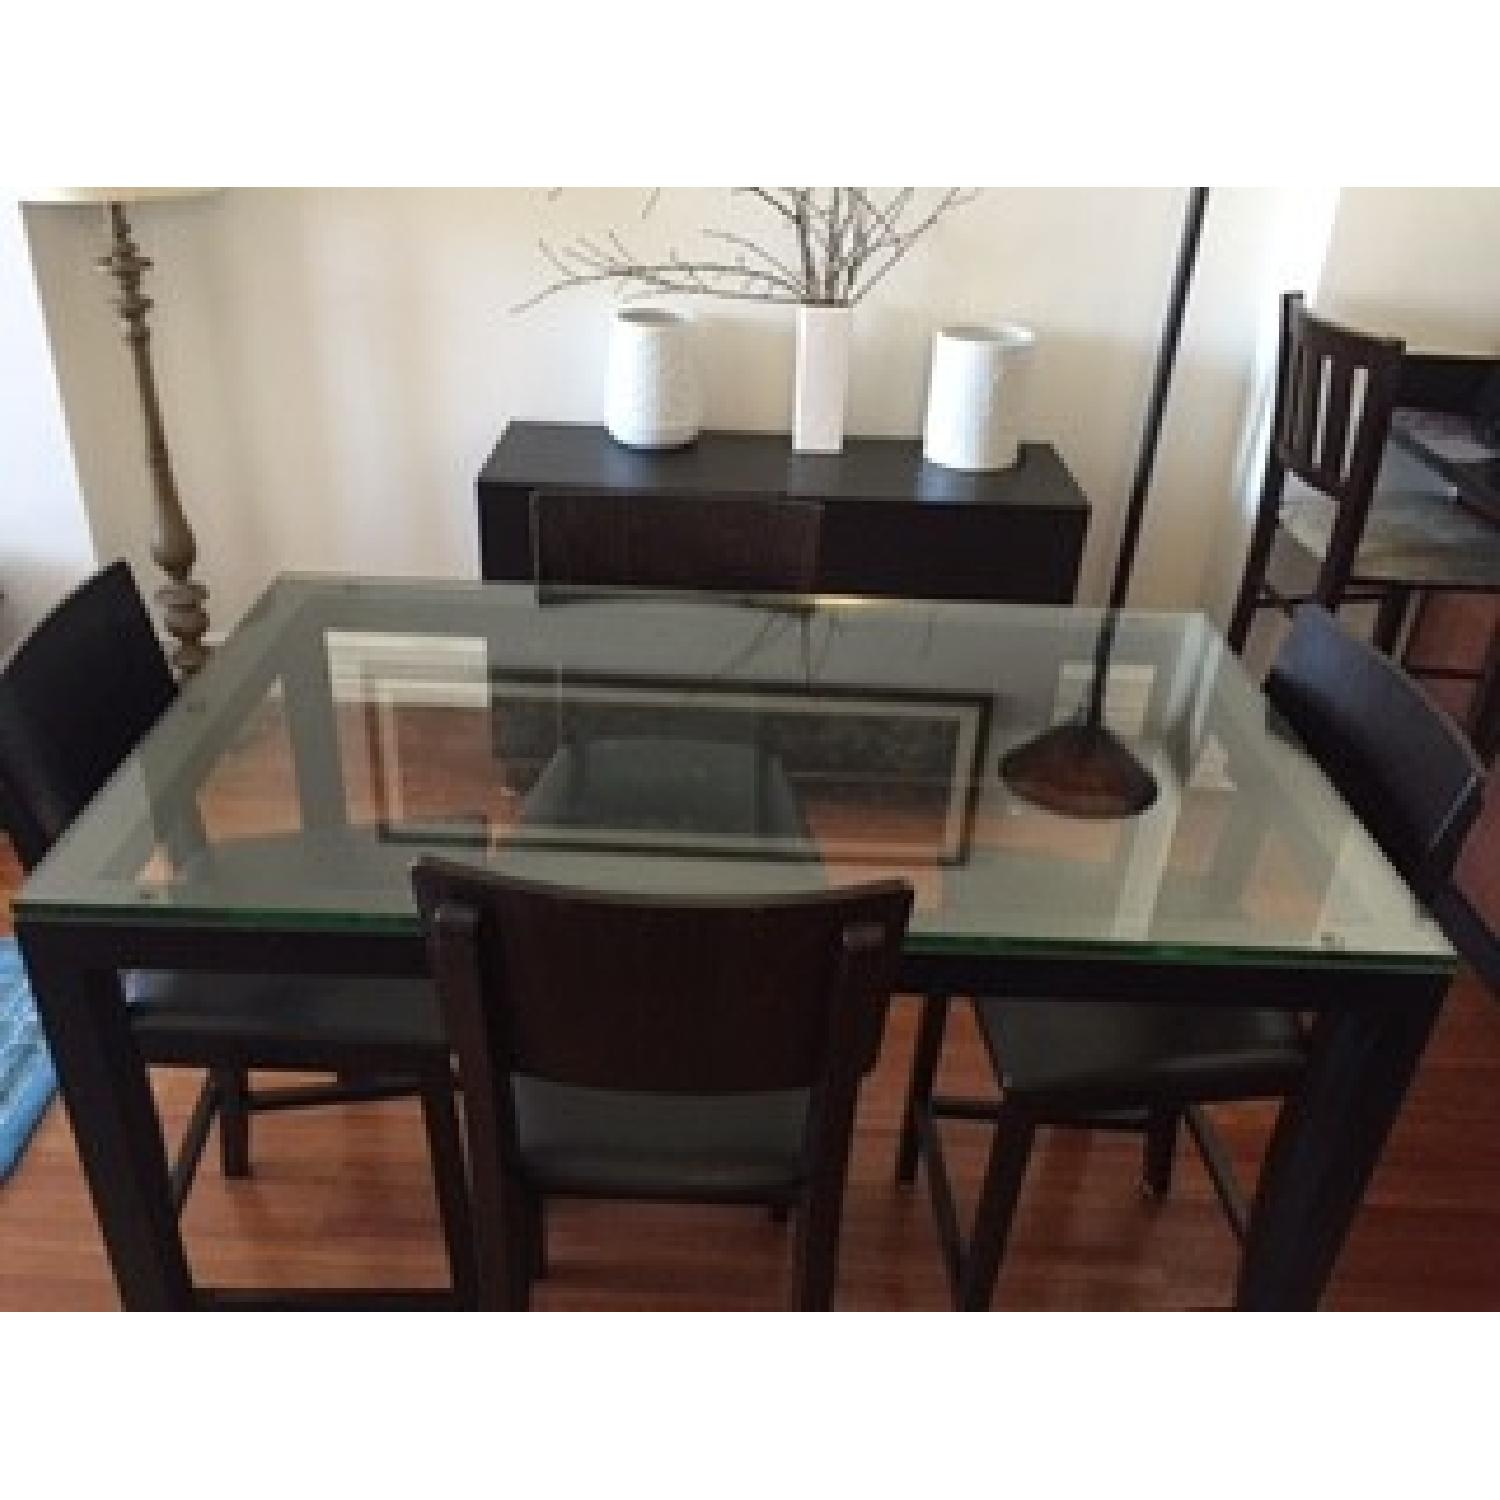 Crate & Barrel Clear Glass Top/ Natural Dark Steel Base Parsons High Dining Table w/ 4 Bar Stools - image-2